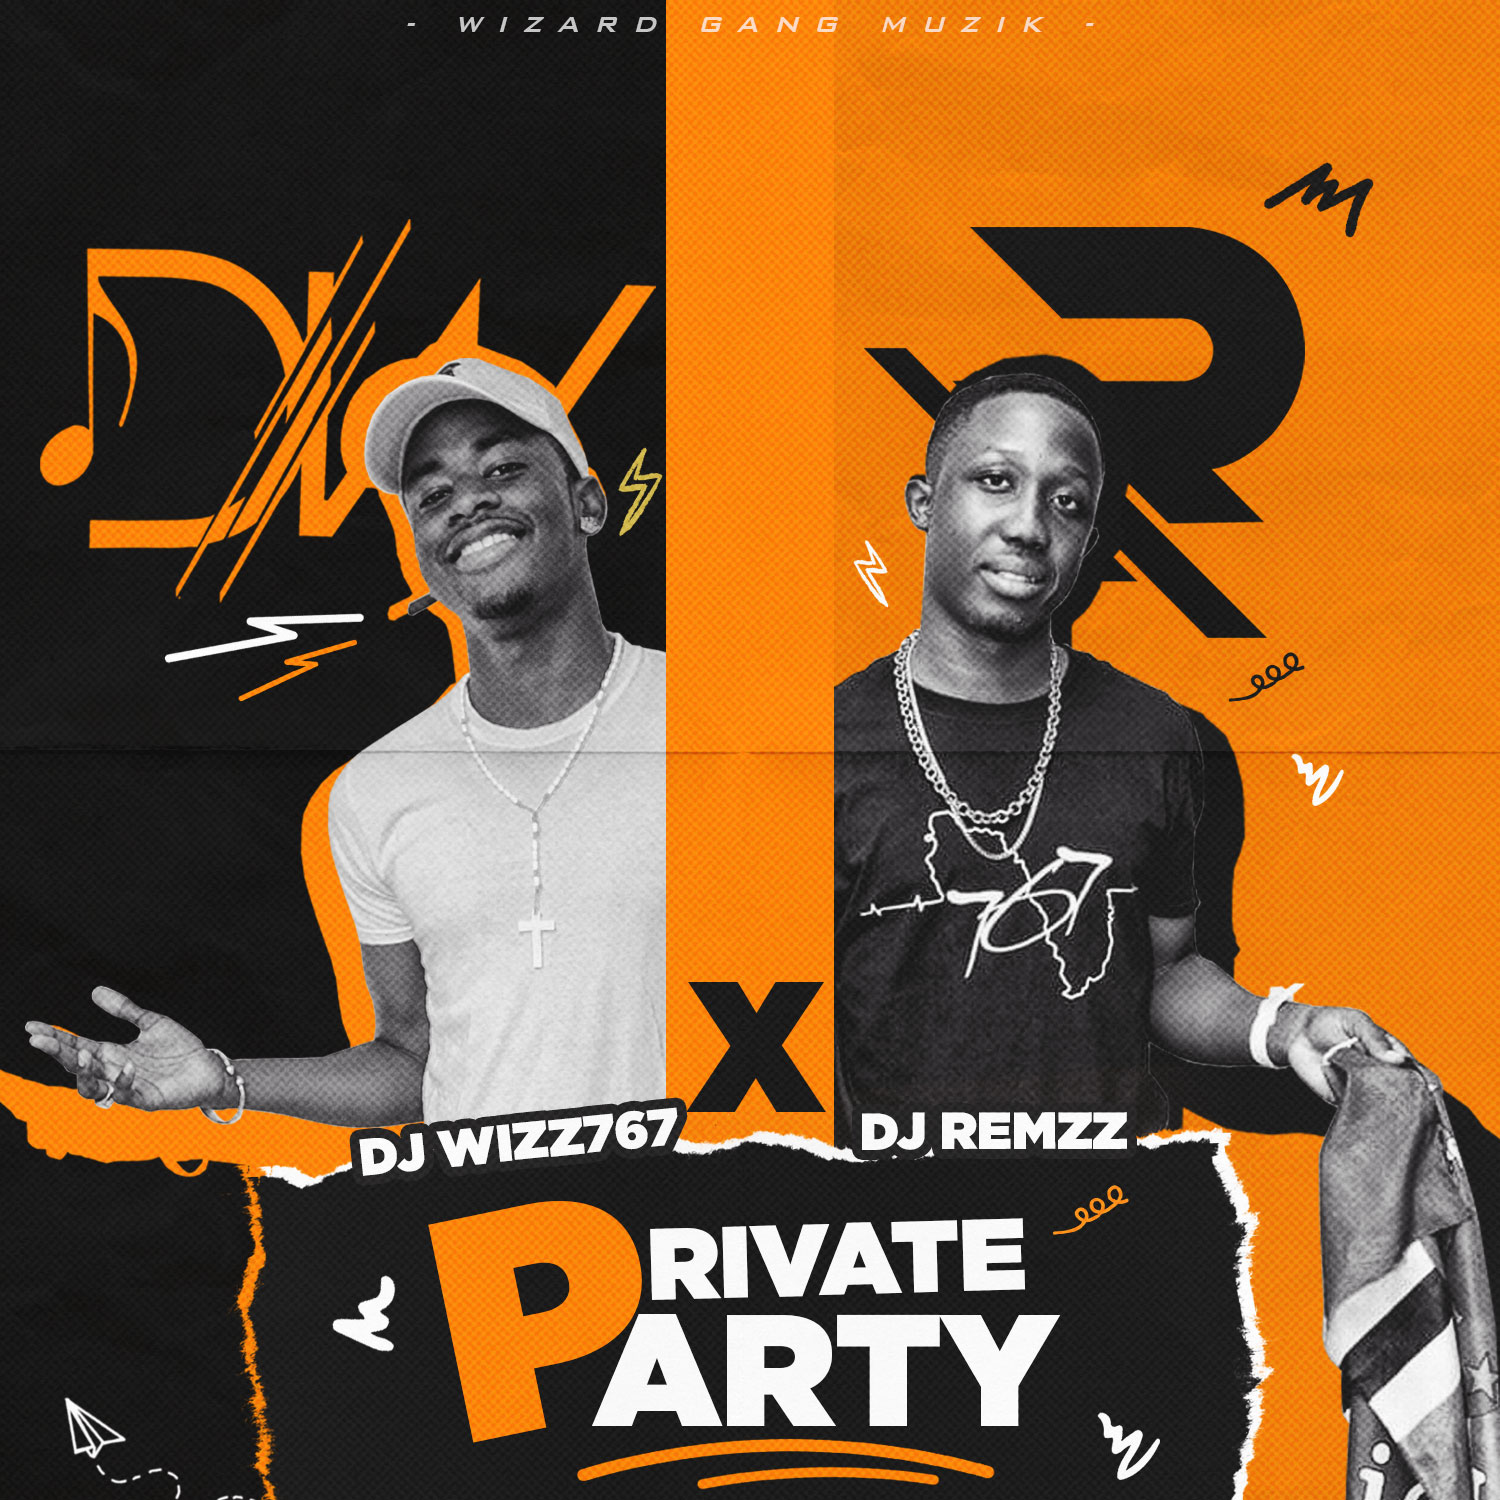 You are currently viewing Dj Wizz767 x Dj Remzz – PRIVATE PARTY